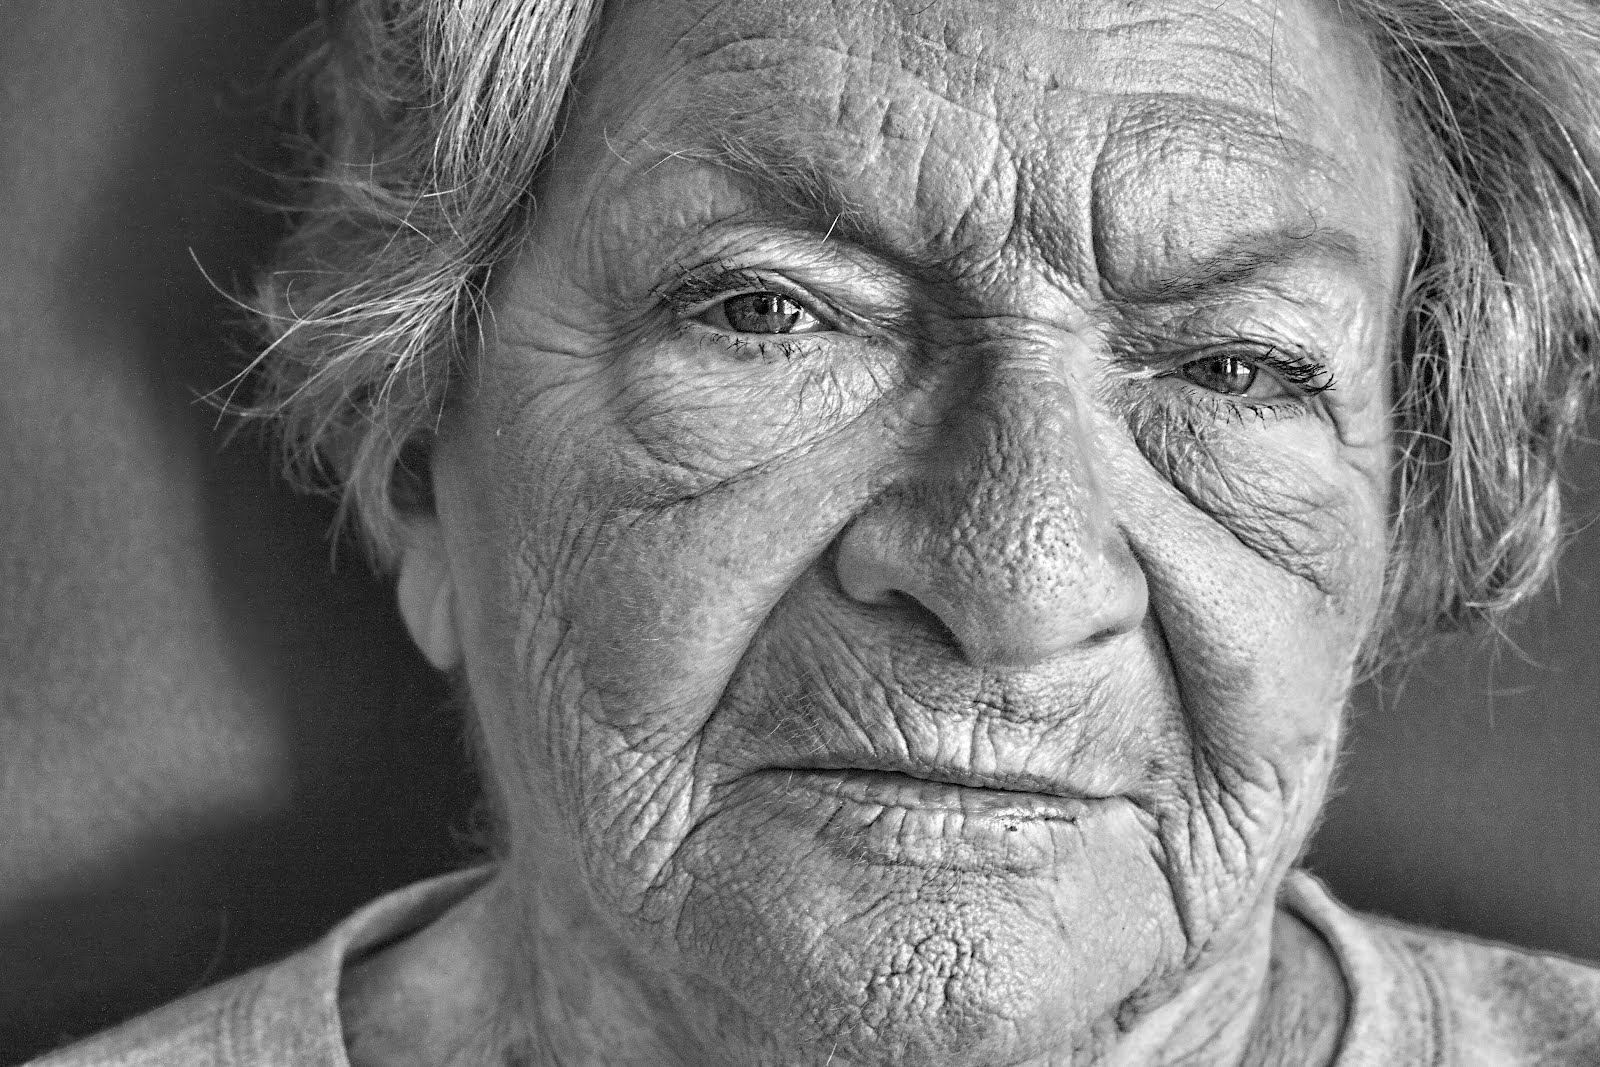 Diana's Photography Journey: Old Women (Black and White)